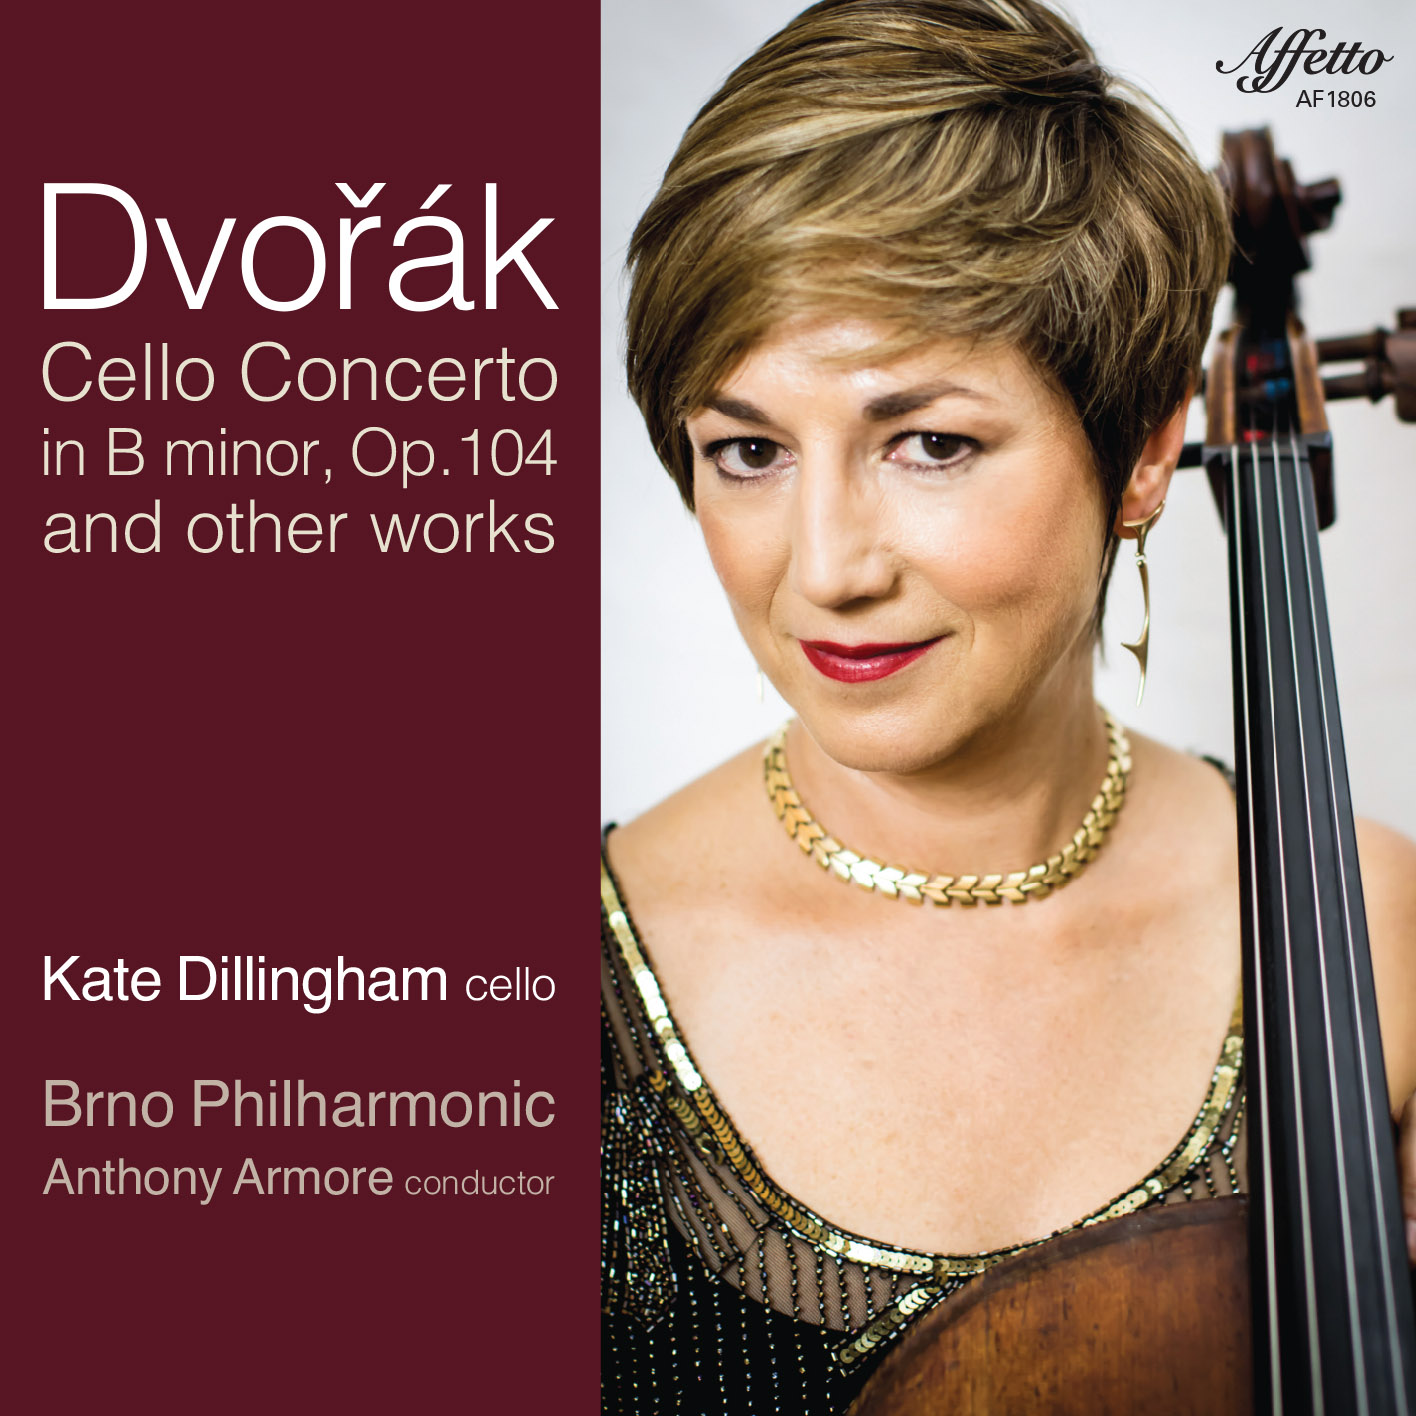 Kate Dillingham – Dvorak / Cello Concerto in B minor, Op. 204 and other works